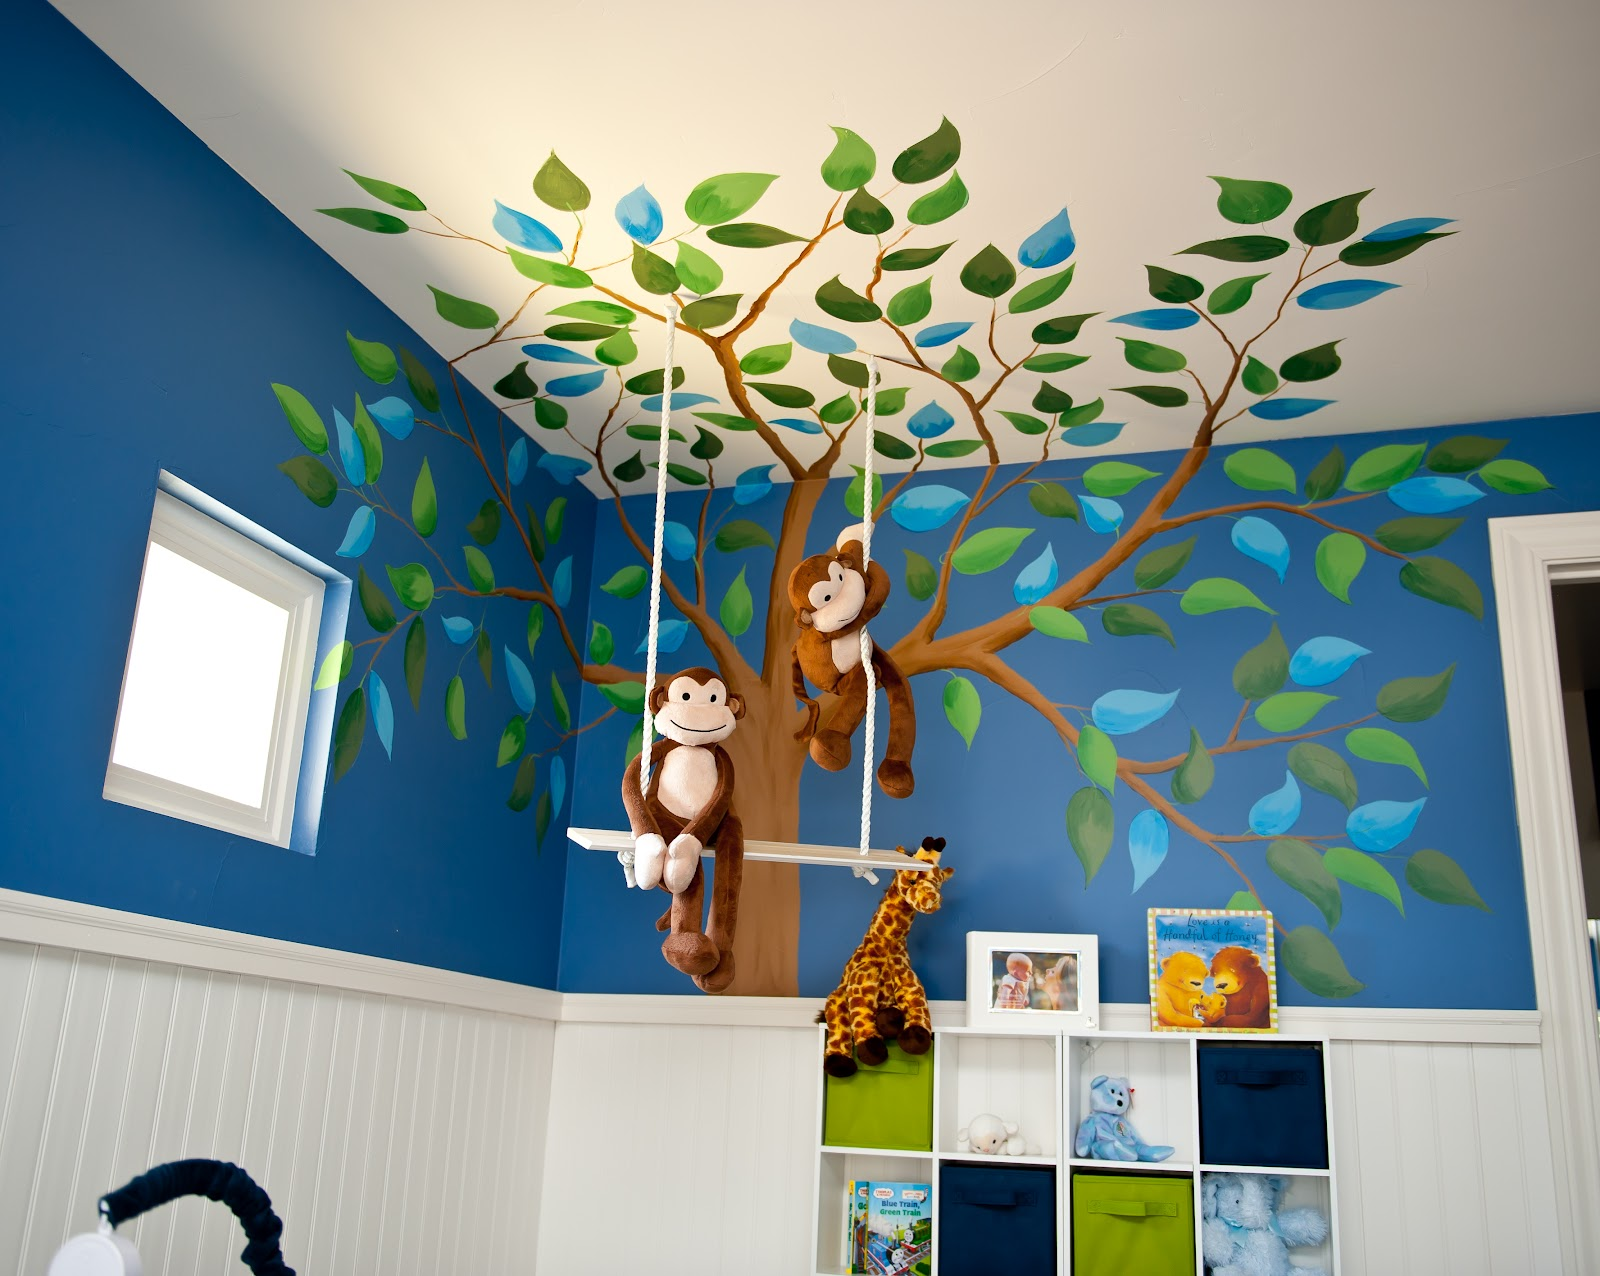 Monkey business nursery design dazzle for Como organizar un periodico mural